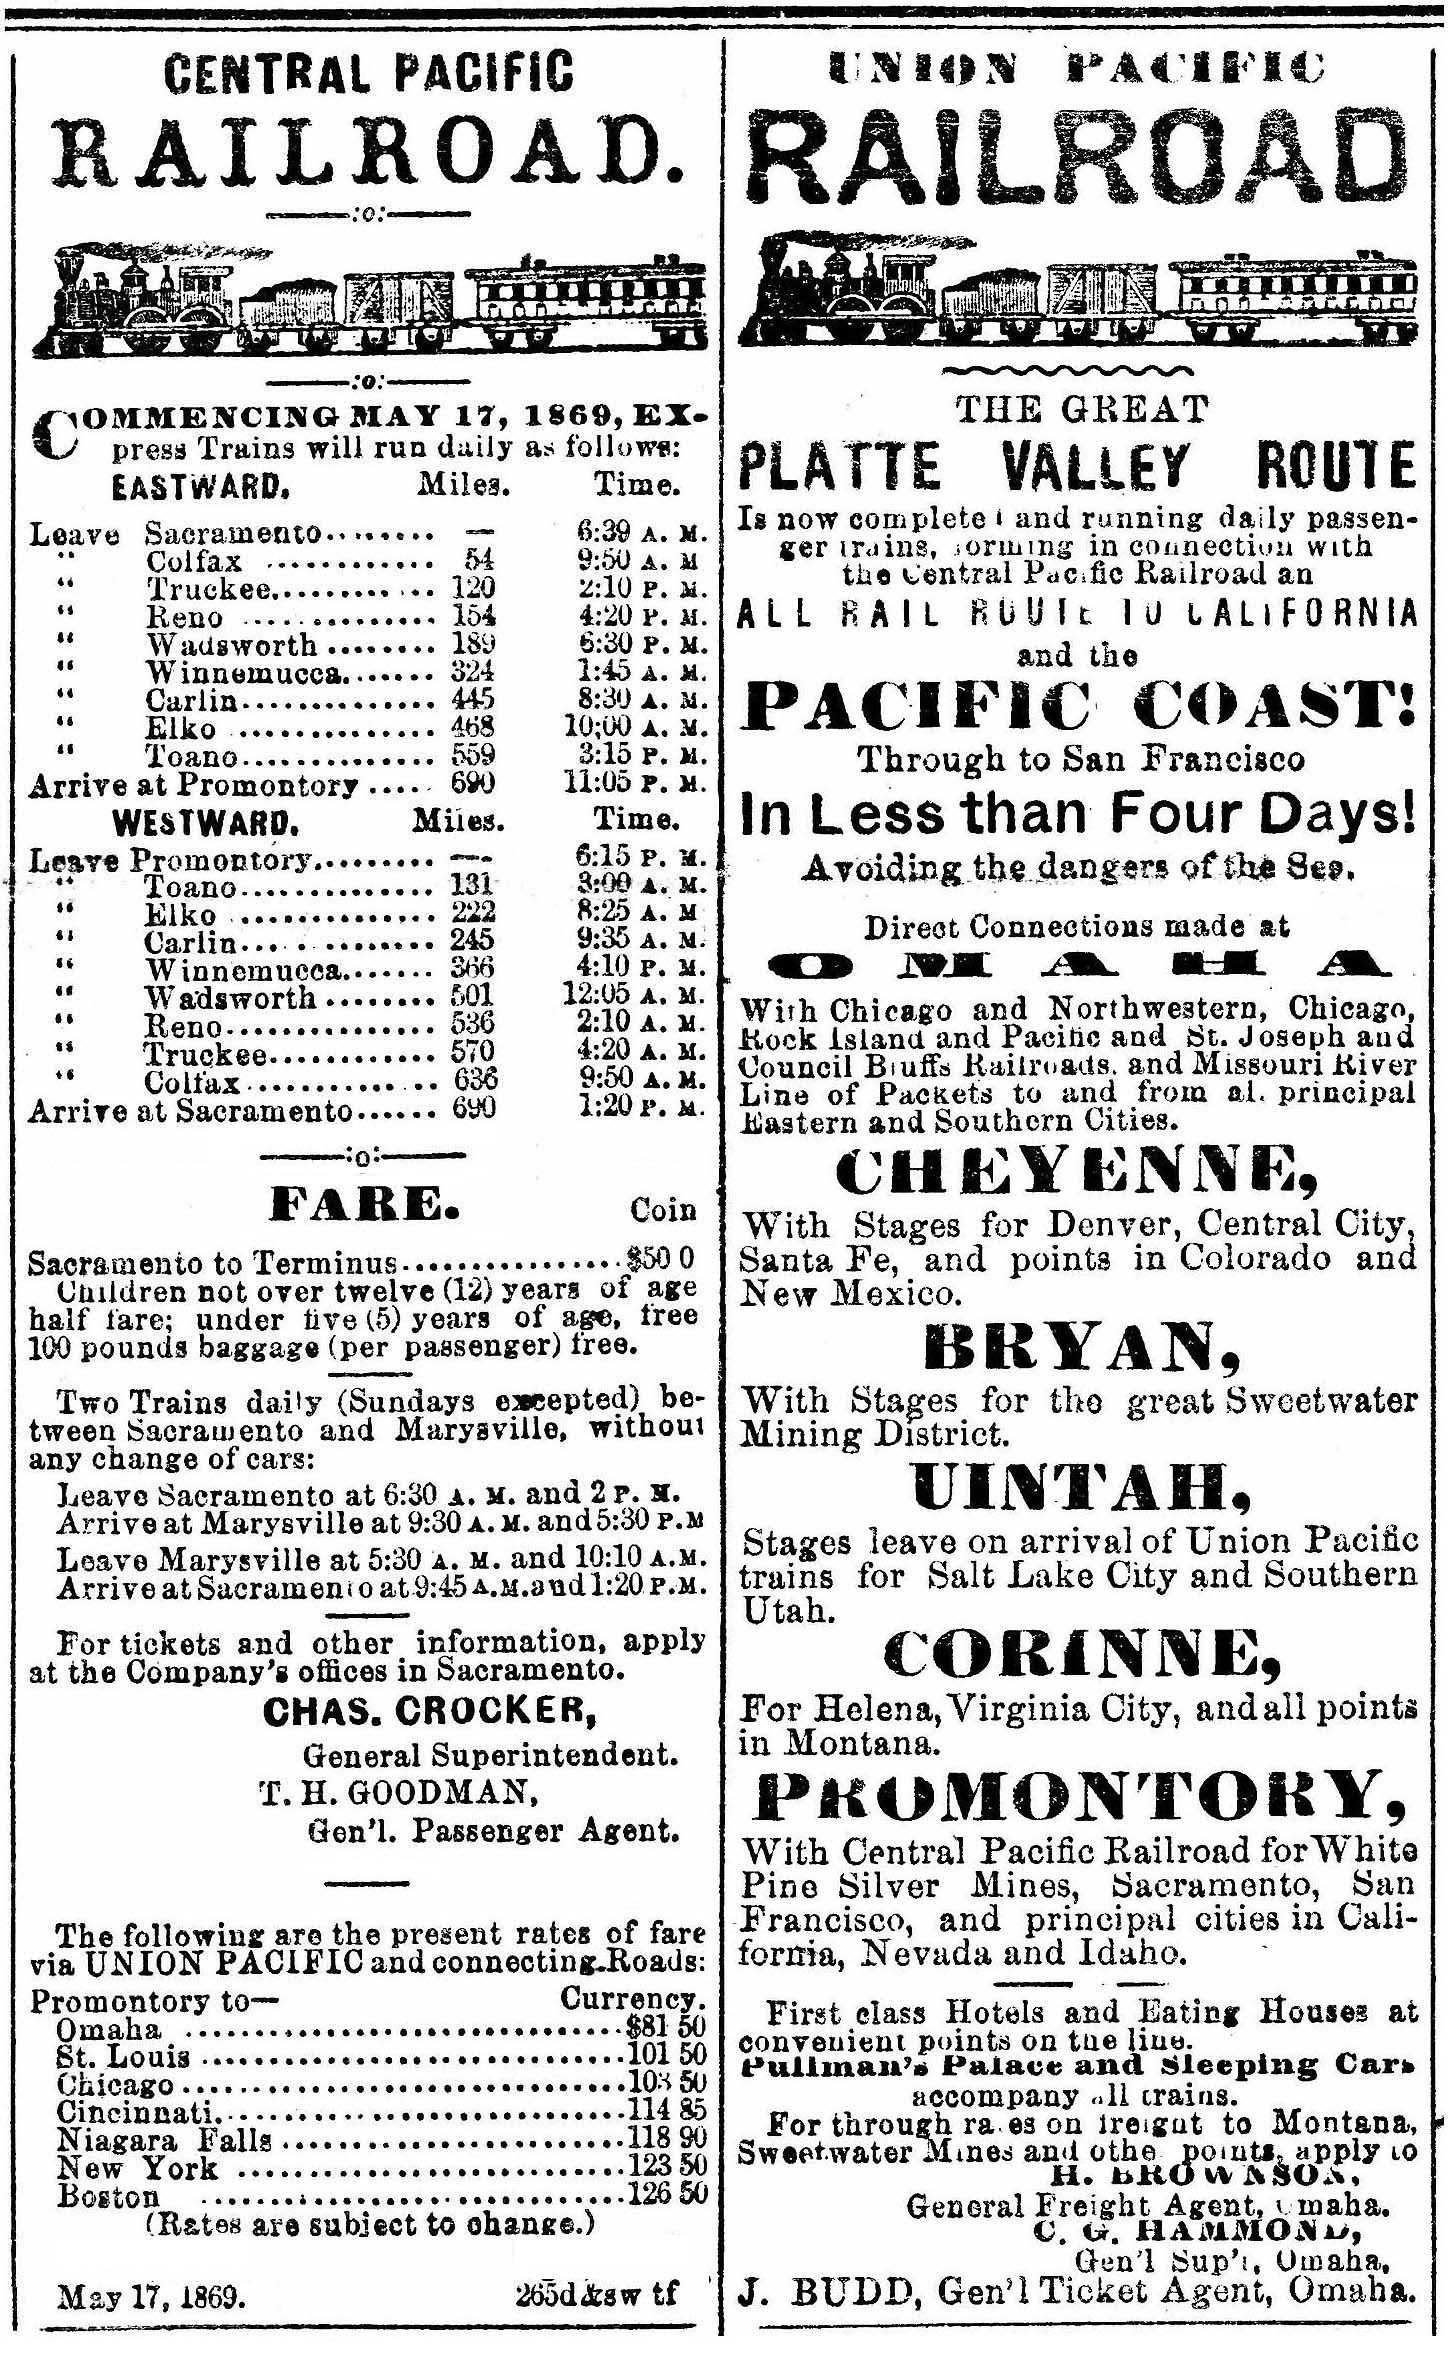 CPRR and UPRR Display Advertisements, May, 1869